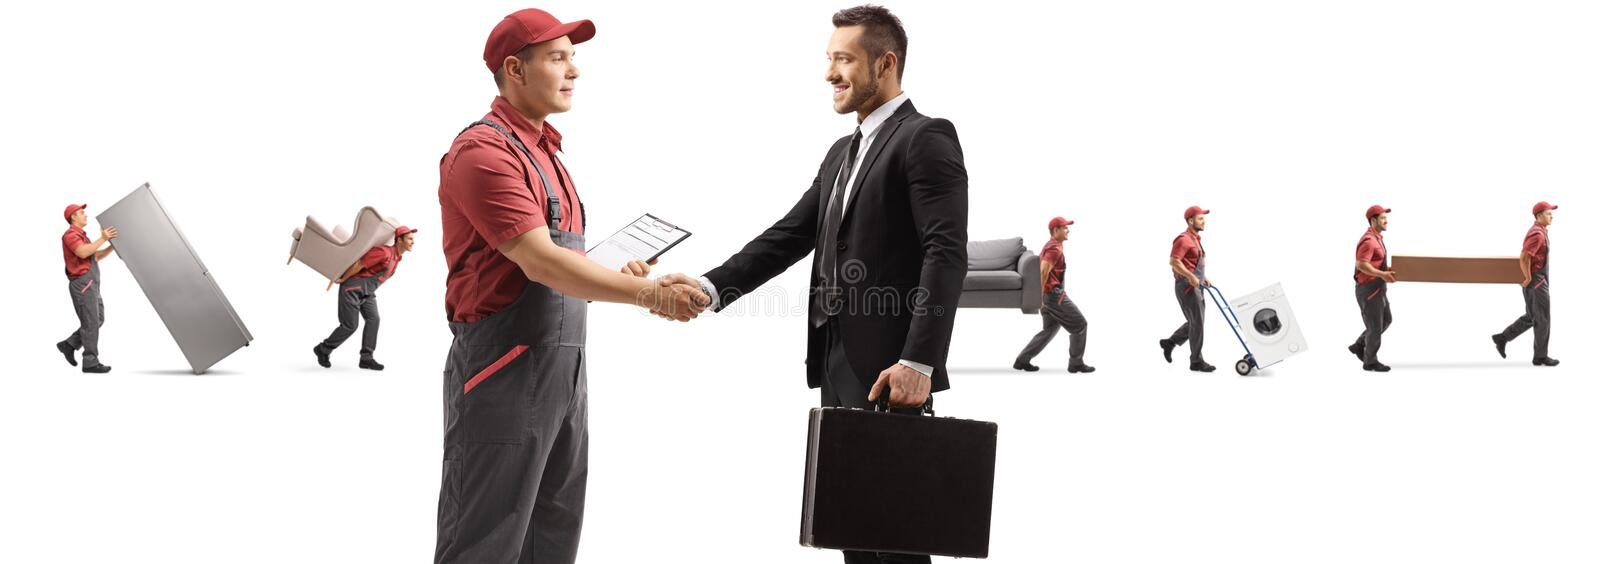 Worker and businessman shaking hands and movers carrying appliences and furniture royalty free stock photo